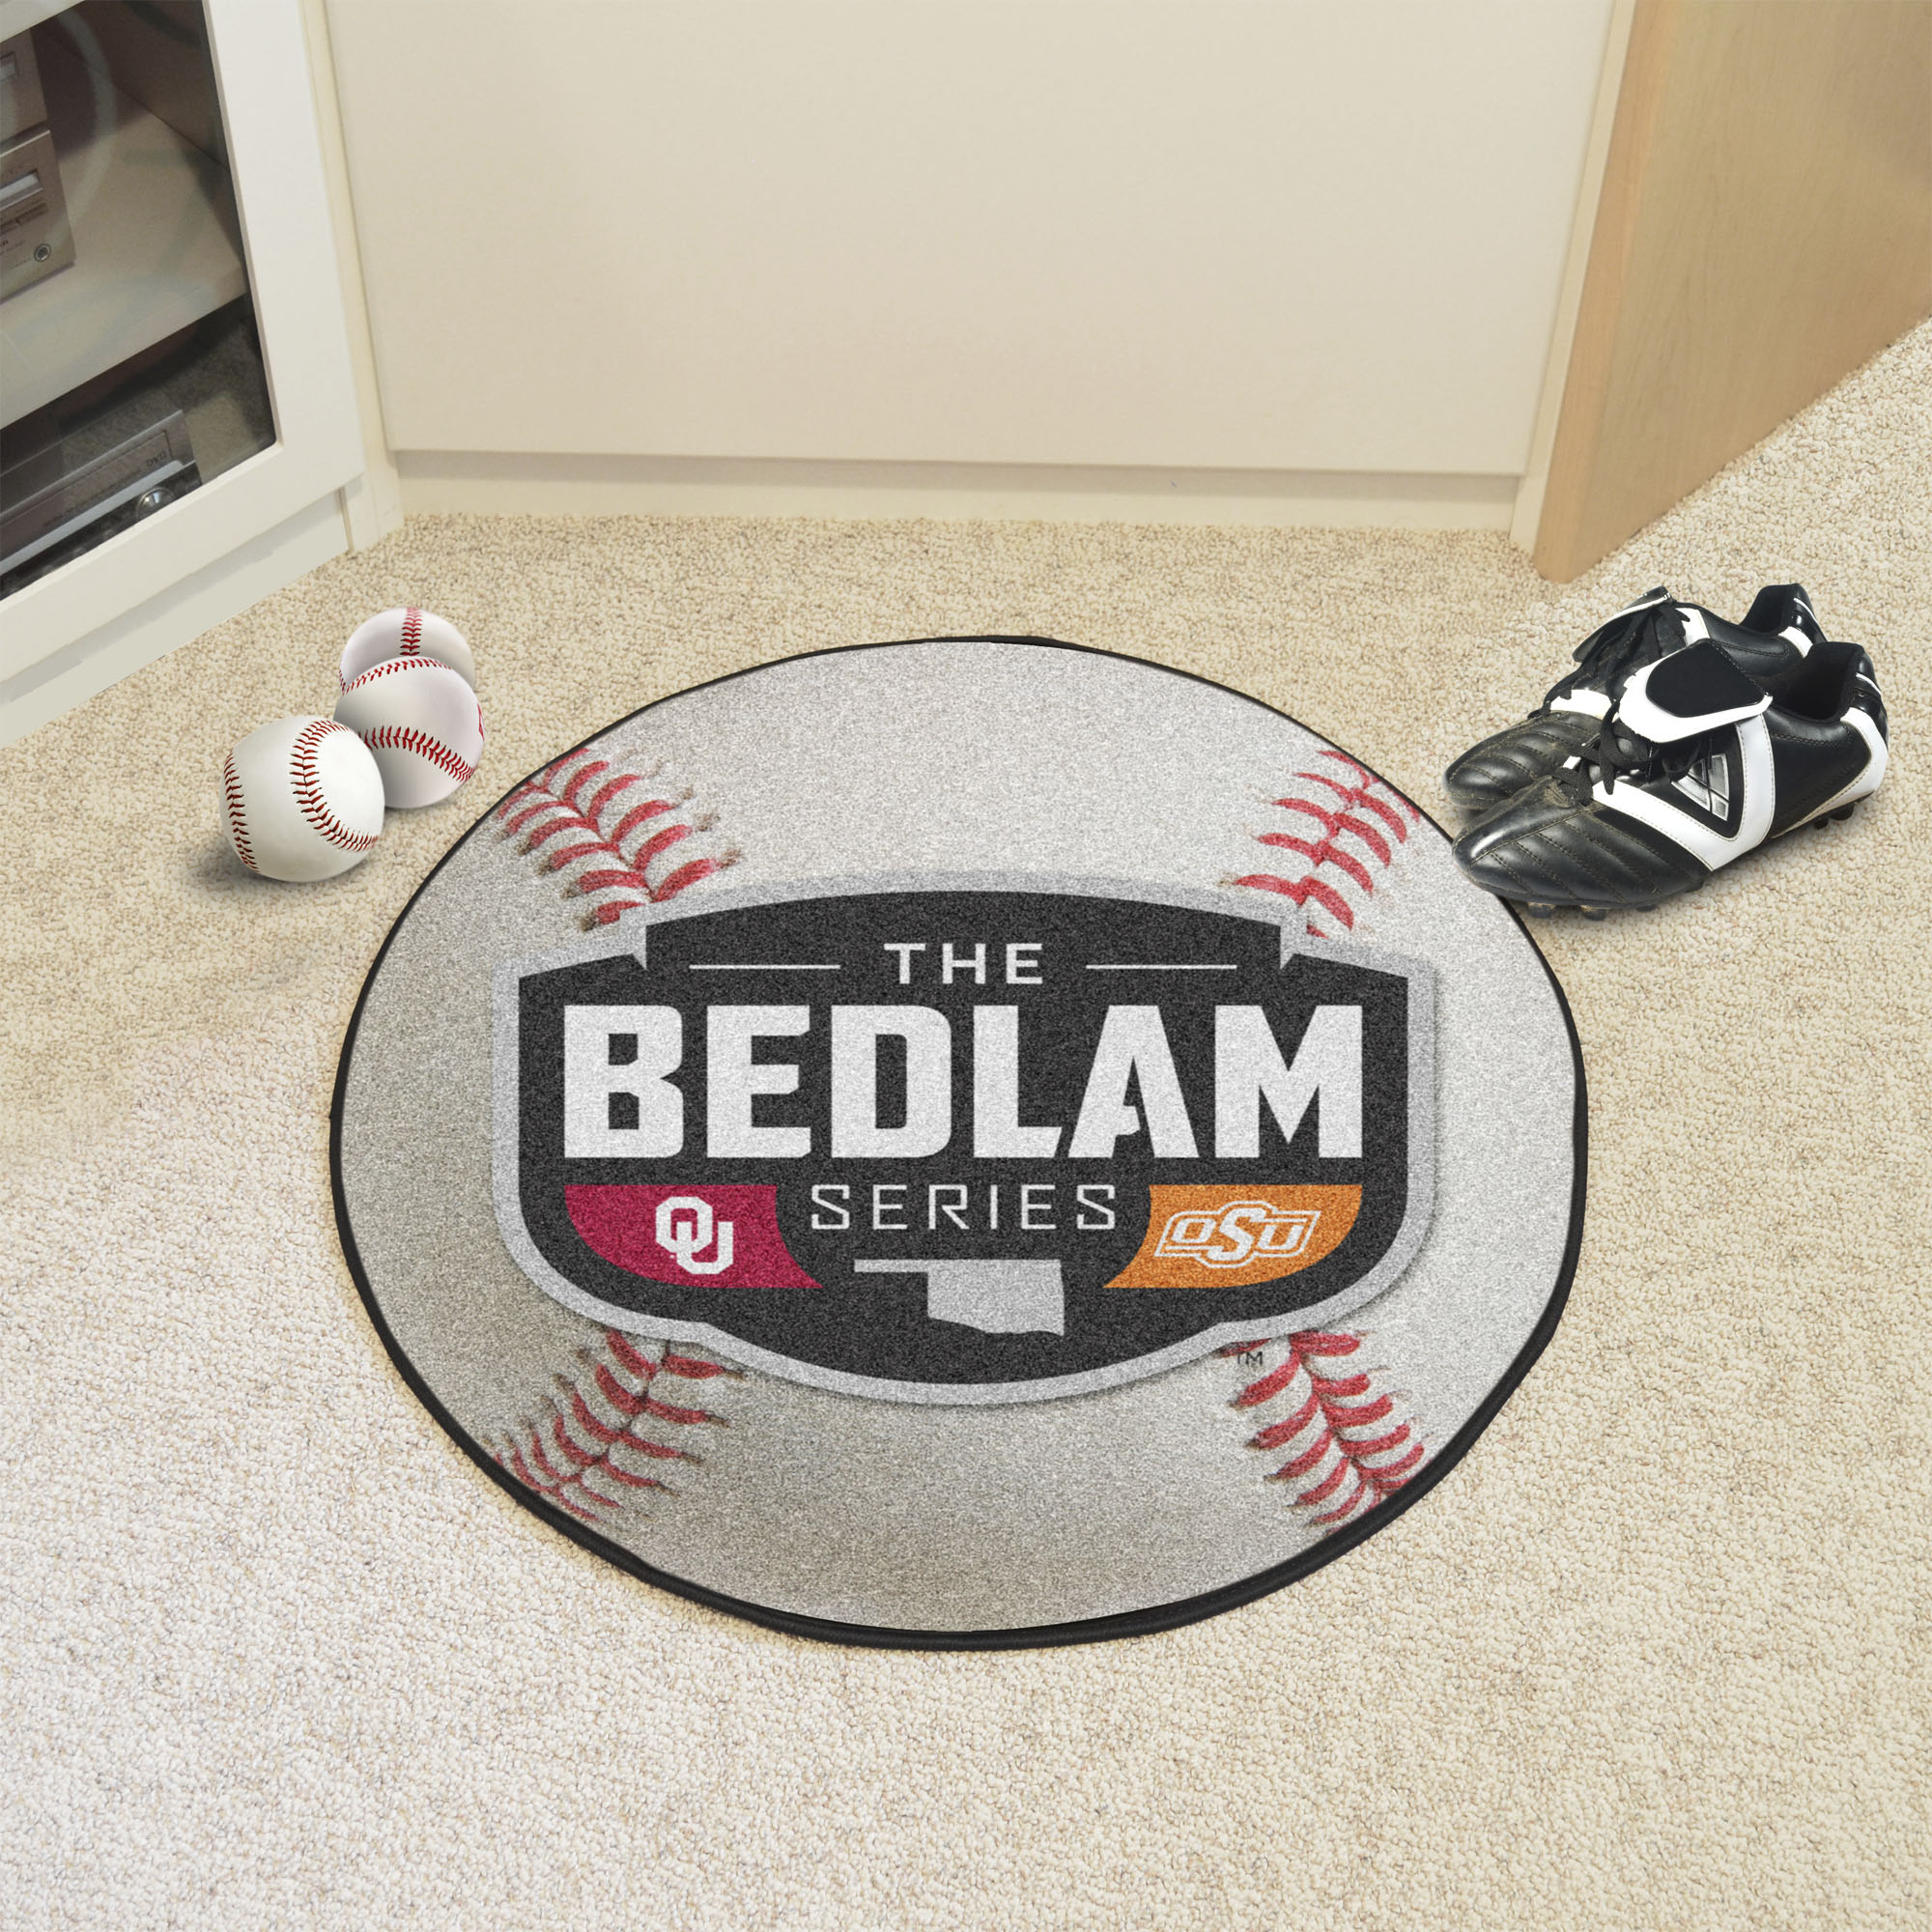 Bedlam Series Ball Shaped Area Rugs (Ball Shaped Area Rugs: Baseball)